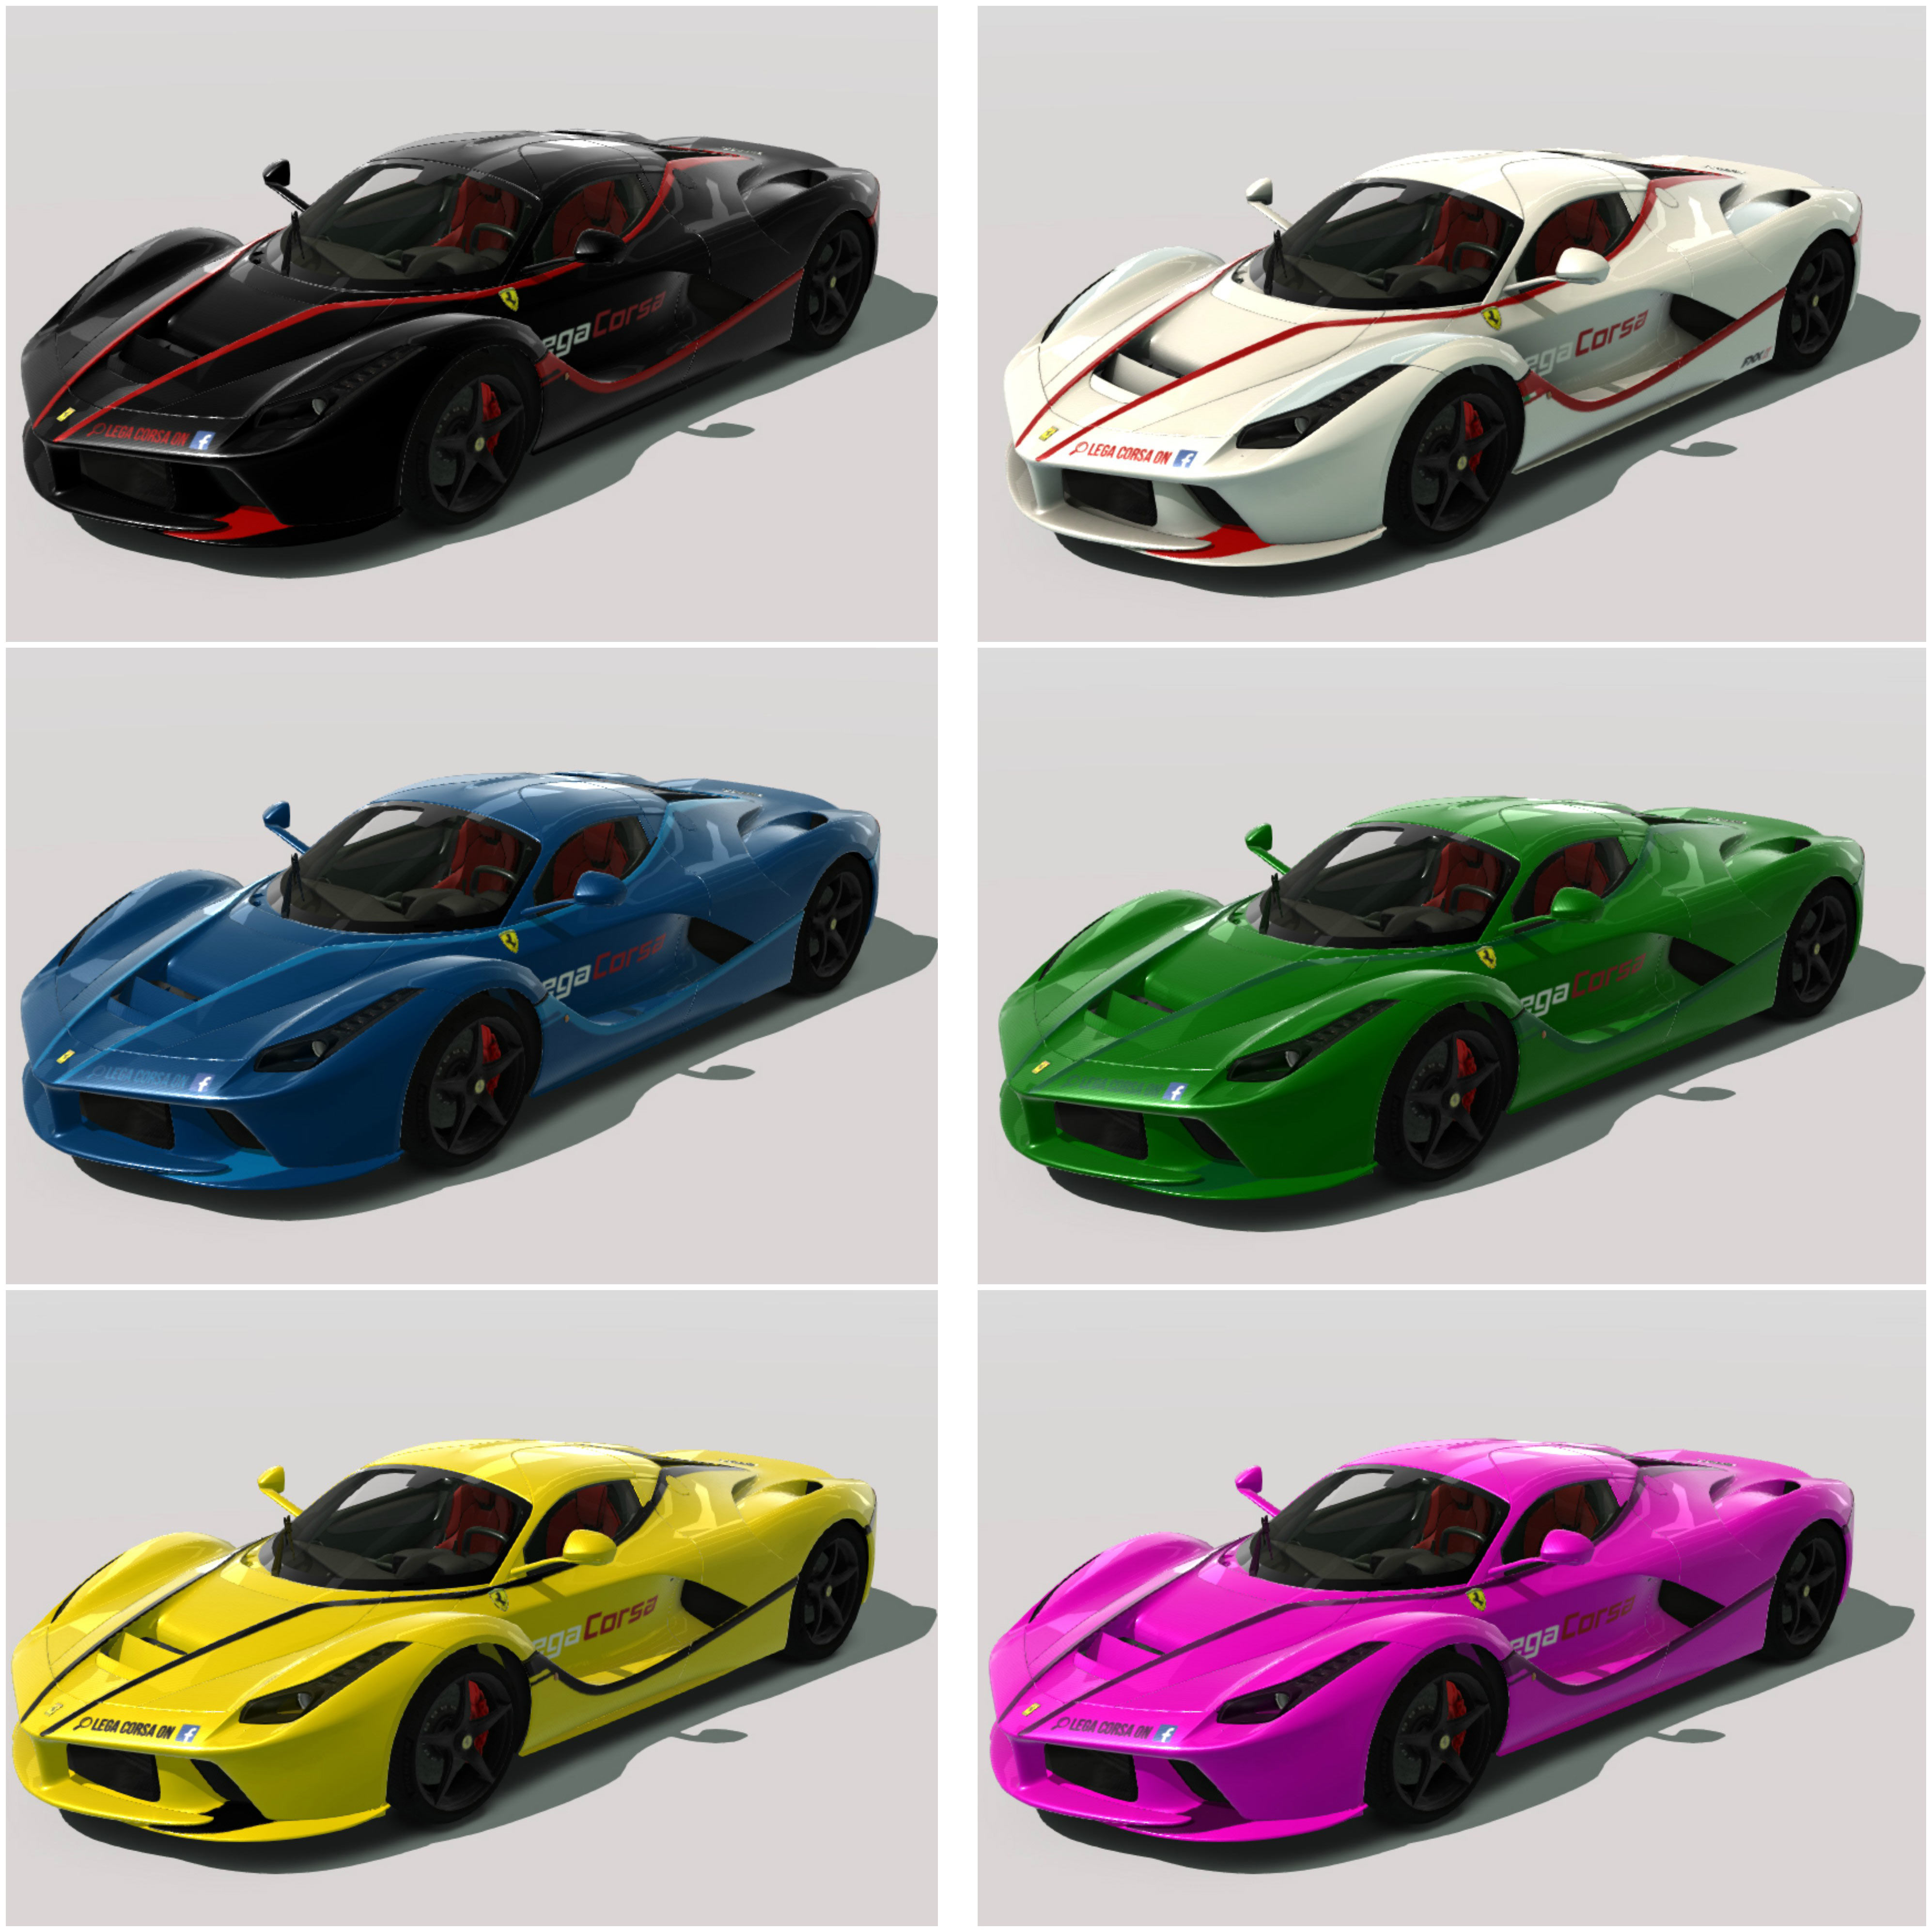 laferrari-collage-1w.jpg